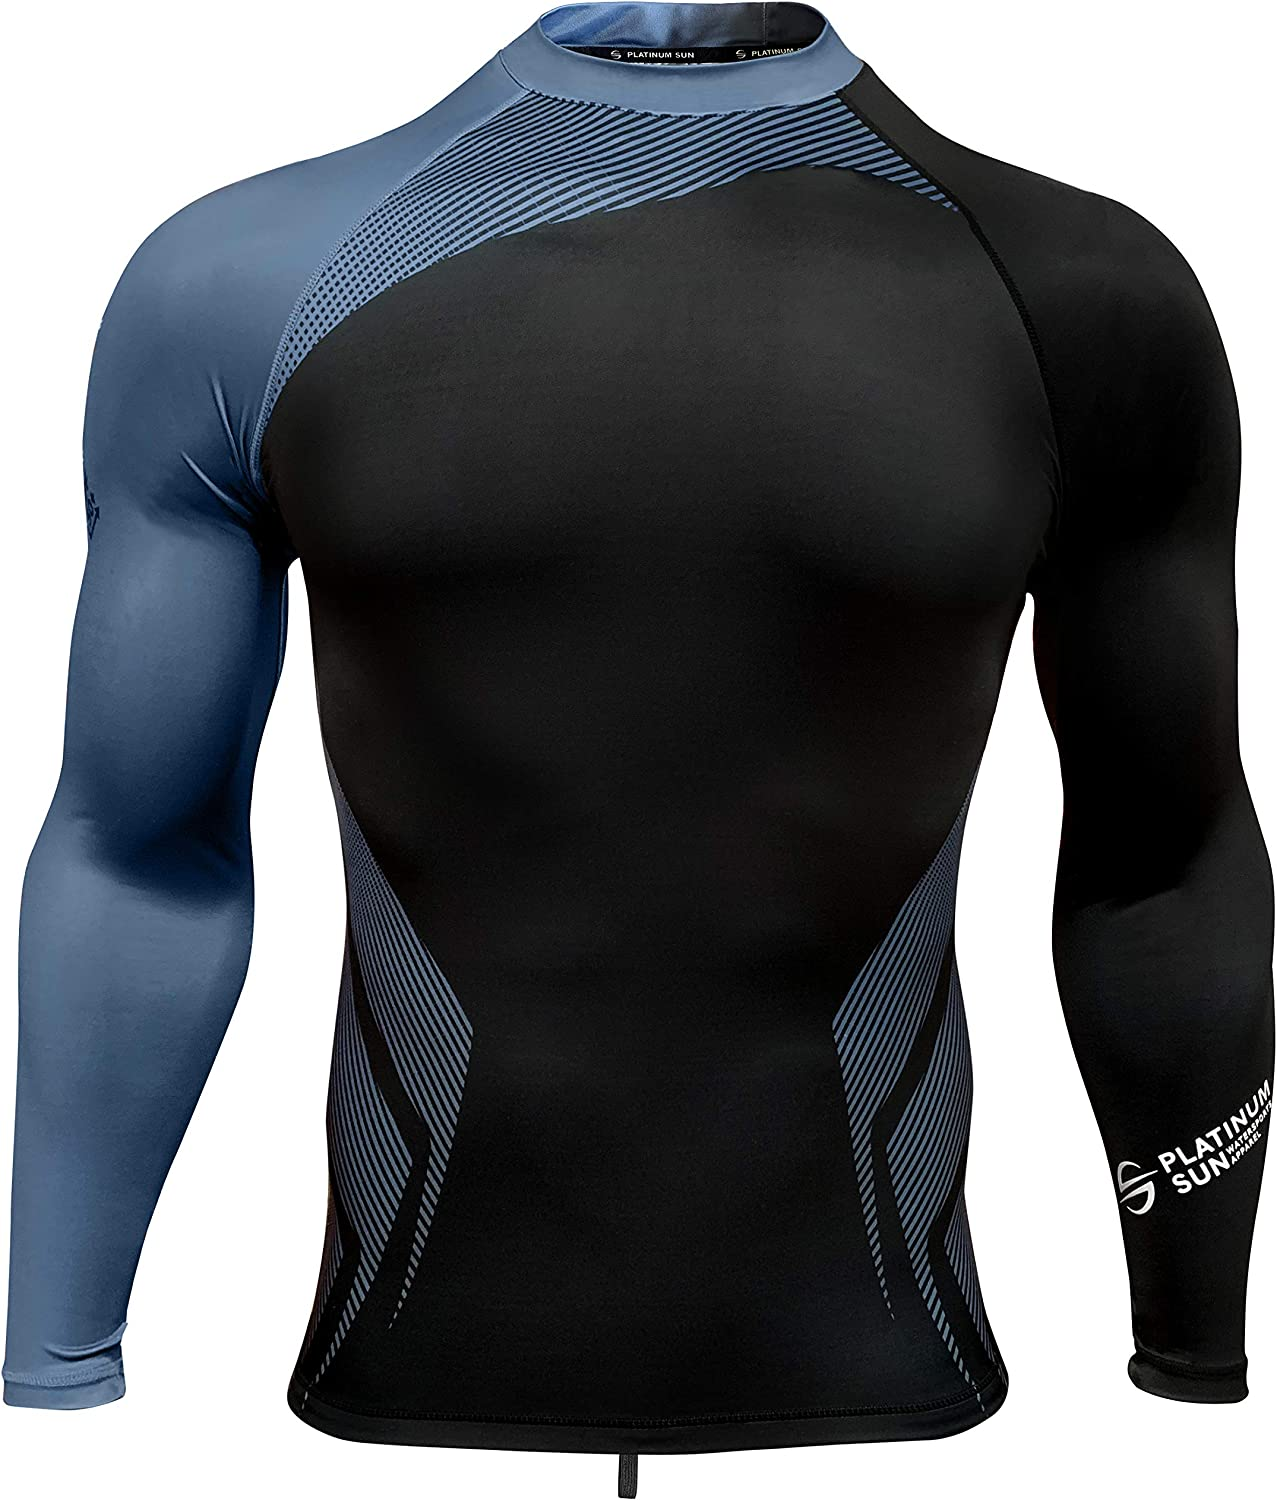 Mens Rash Guard Long Sleeve Surf Shirt Swimsuit - Quick Dry Sun Protection Clothing UPF 50+